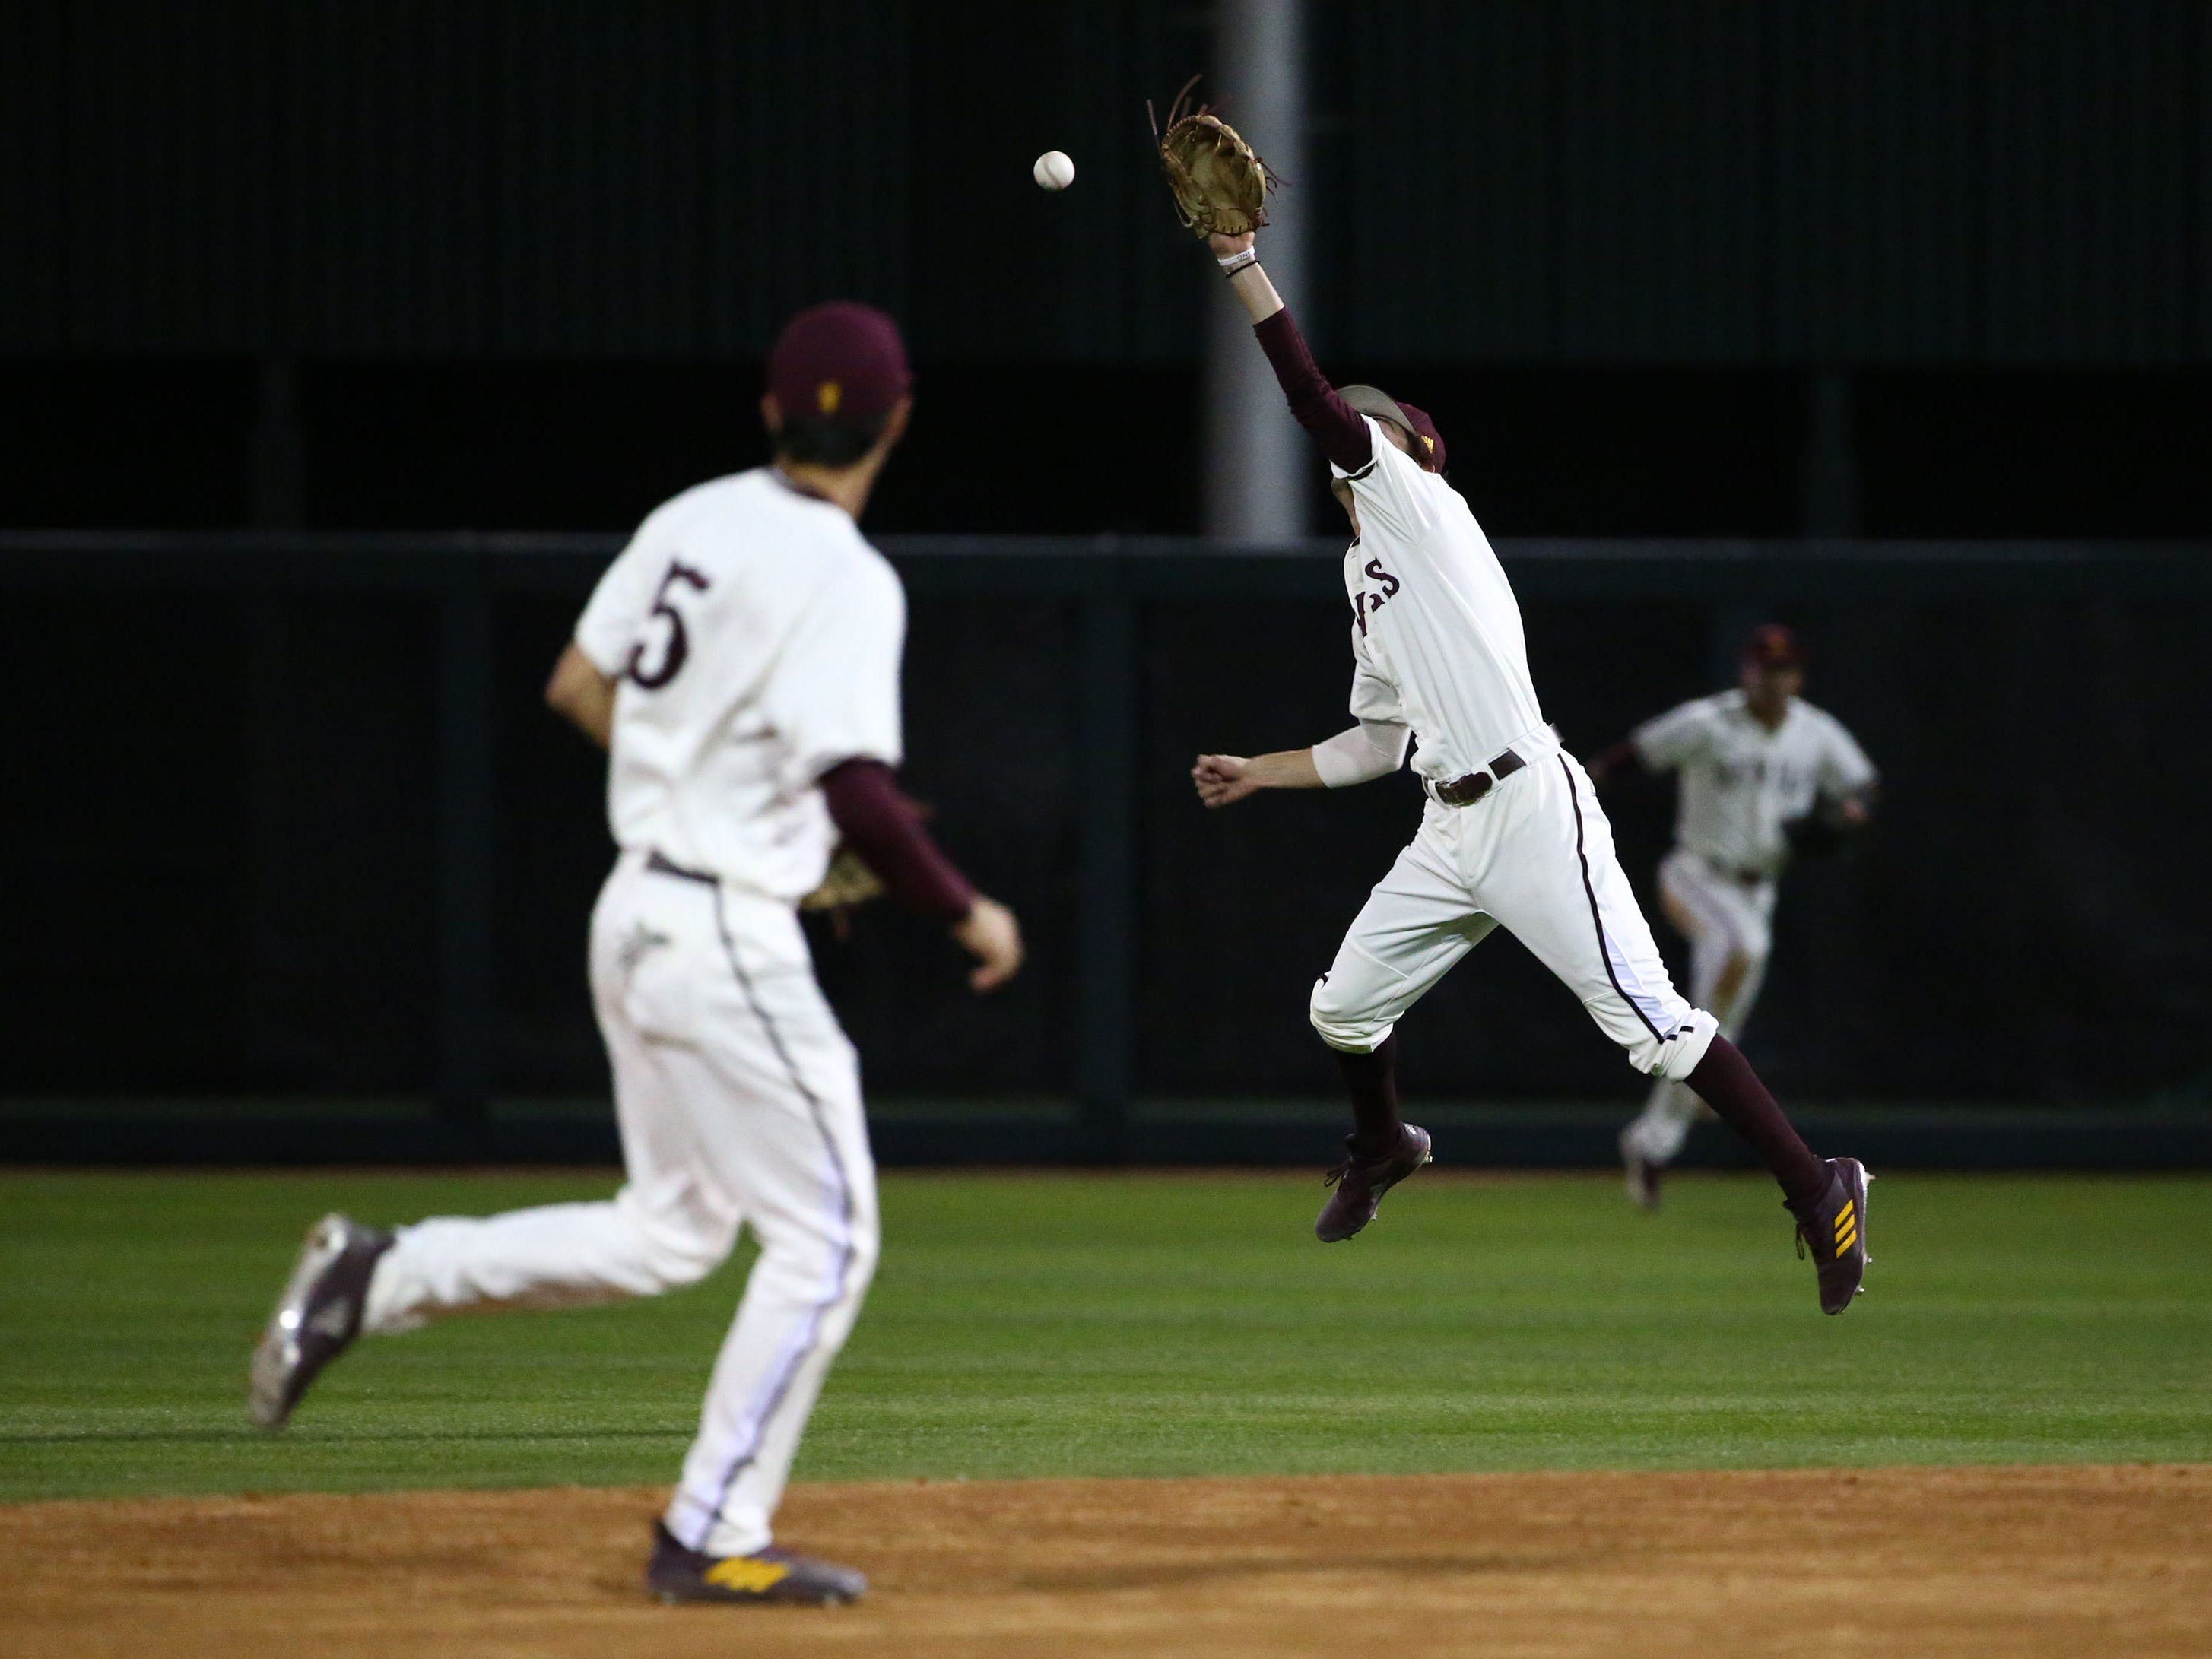 Arizona State Sun Devils second baseman Drew Swift jumps but can't make a play on a ground ball from California Baptist Lancers Chad Castillo in the second inning at Phoenix Municipal Stadium on Mar. 20, 2019 in Phoenix, Ariz.